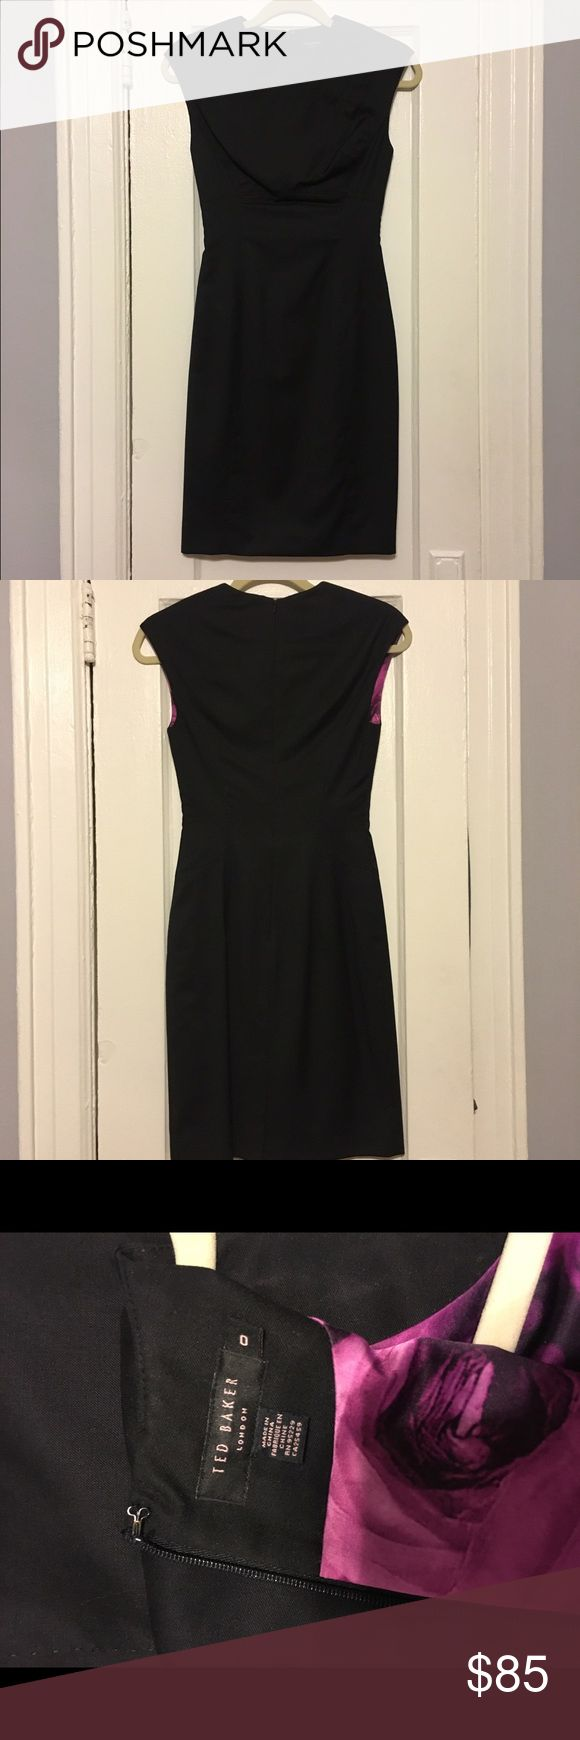 Ted Baker Little Black Dress Classic little black dress with silky lining. Dress runs small. It's perfect for a work/professional event or wedding/formal event as well. Ted Baker Dresses